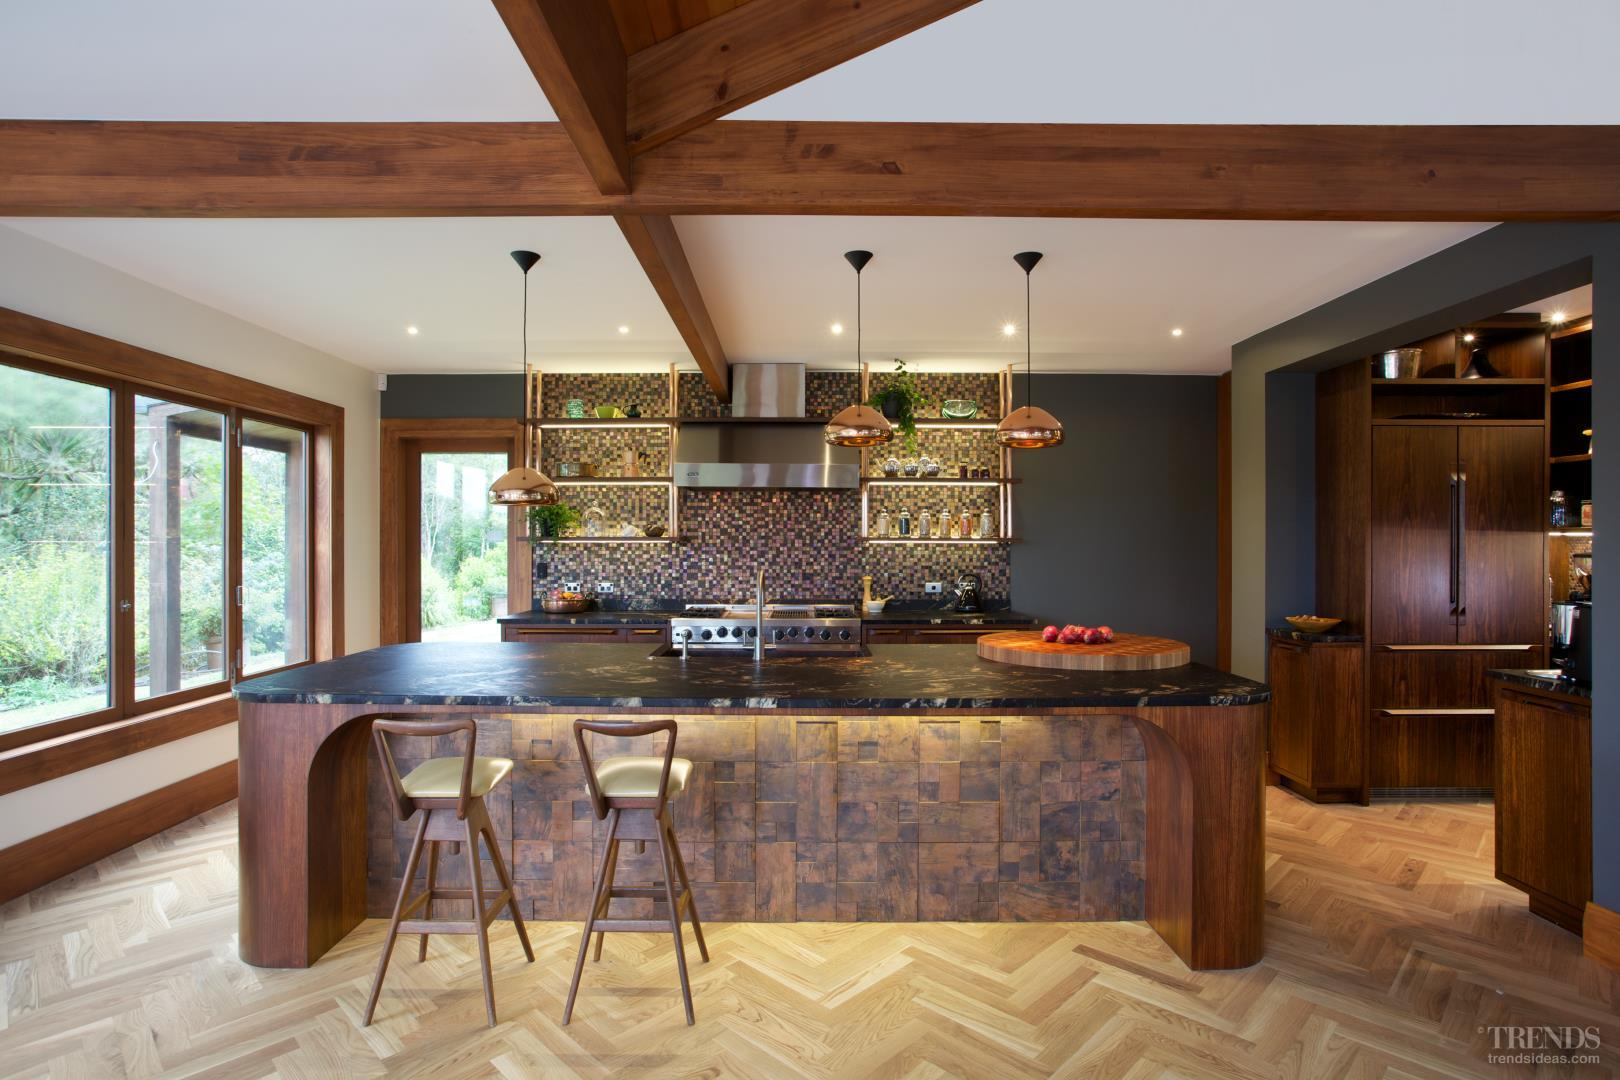 Kitchen In Desert Modern Style With Copper Tiles